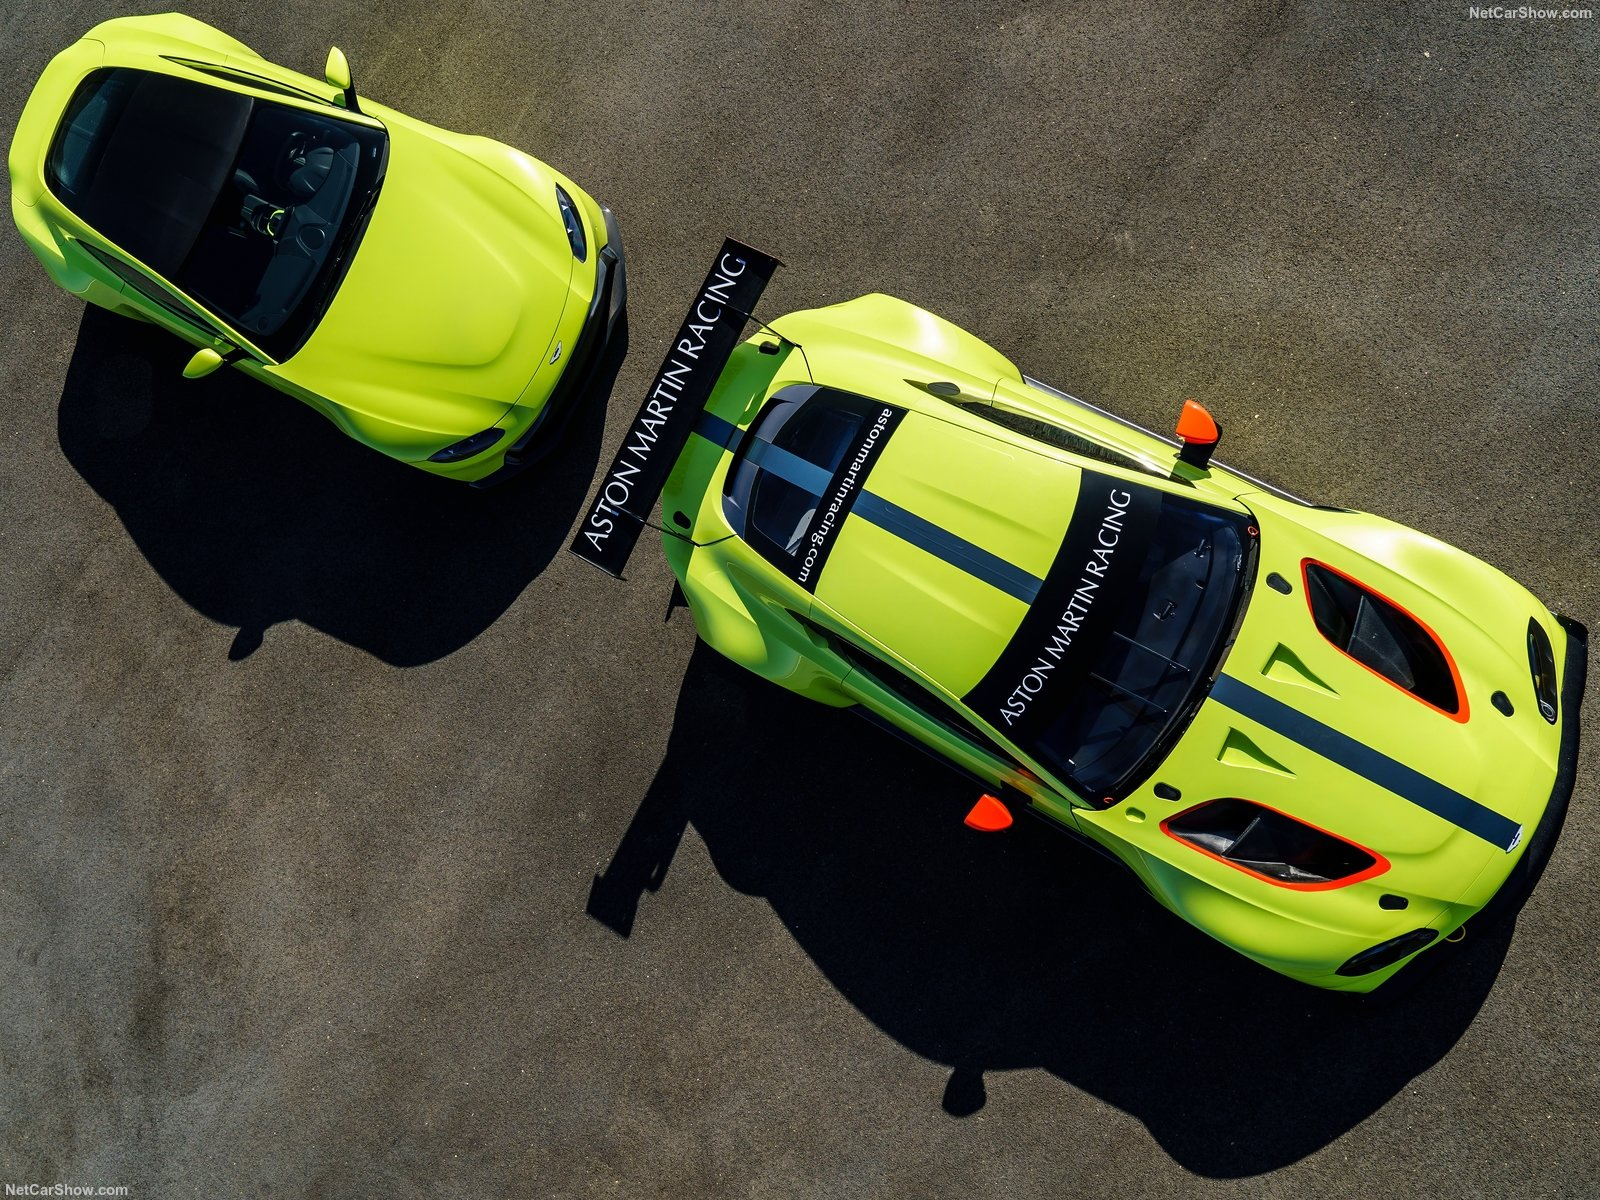 Aston Martin Vantage GTE Racecar photo 183876